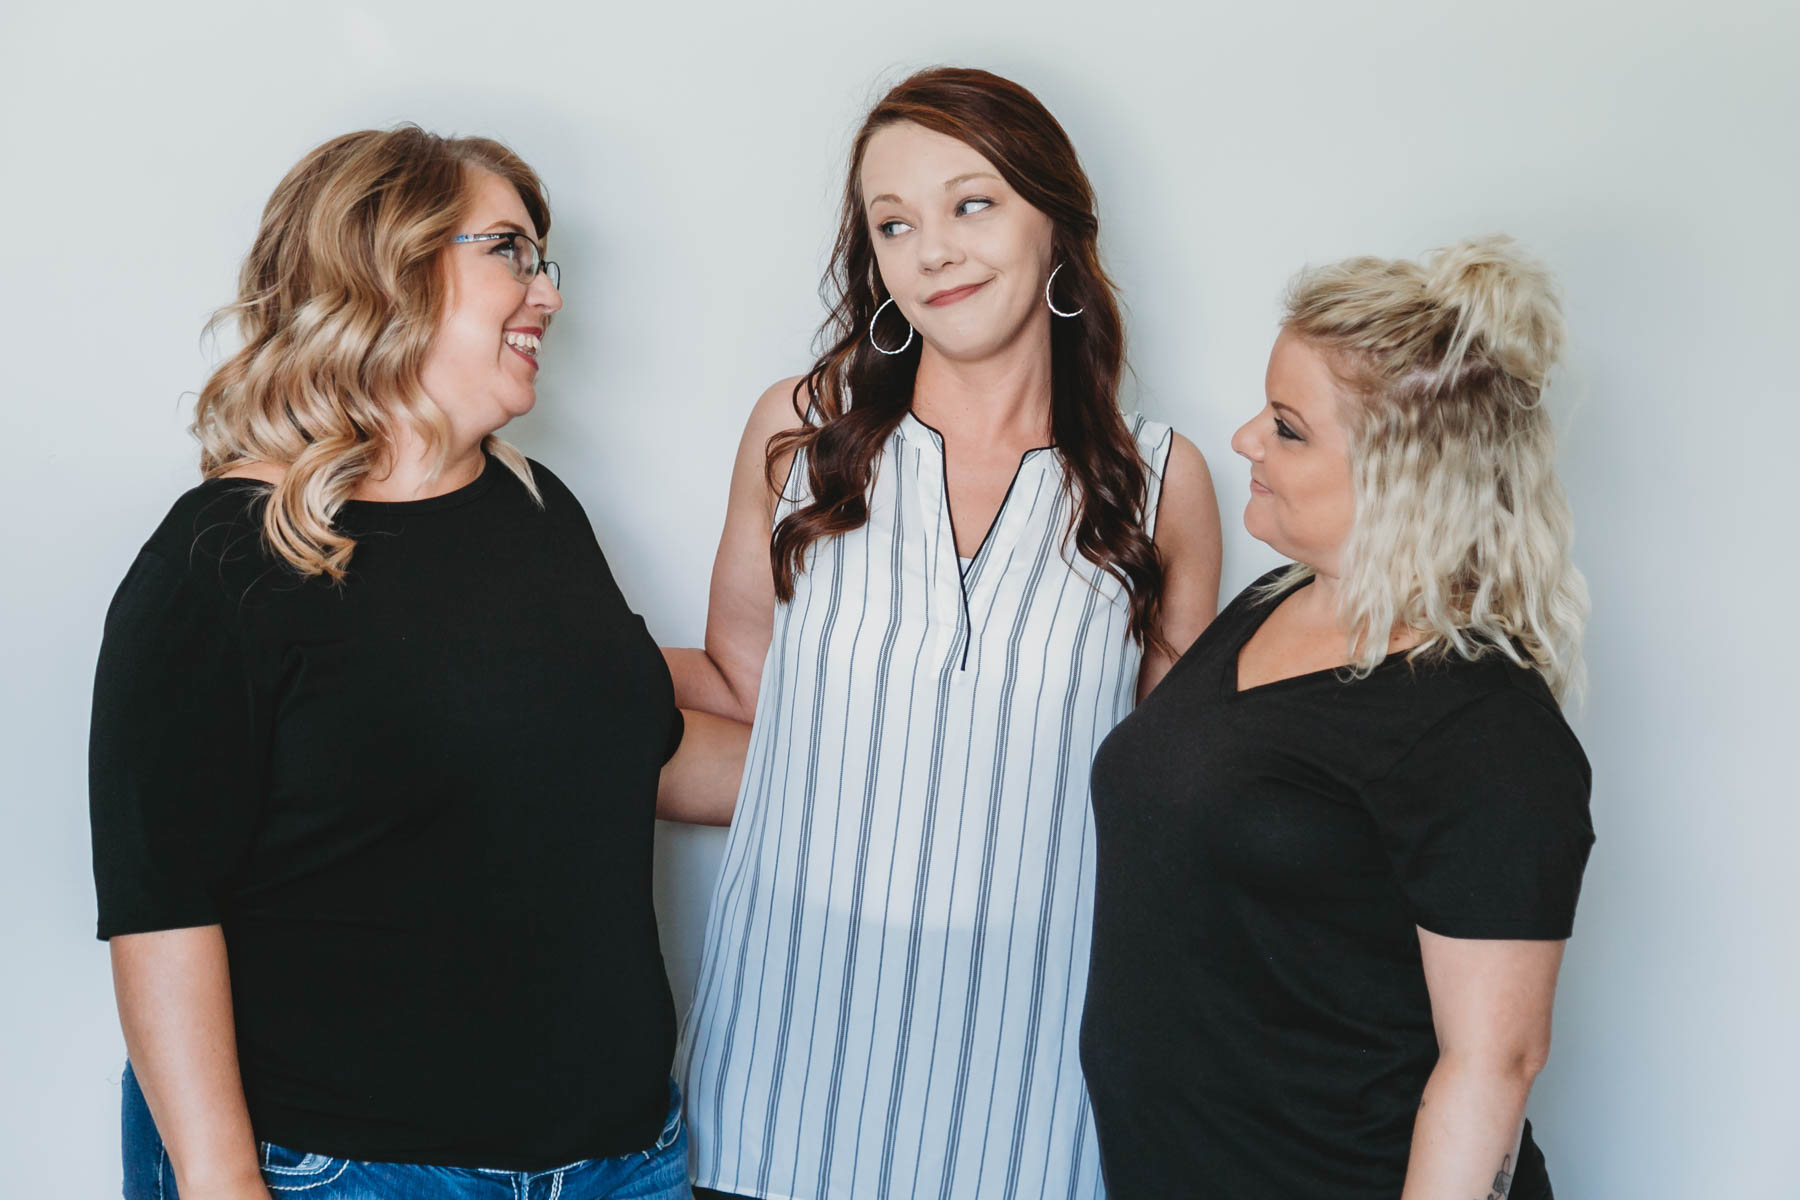 Chattanooga Brand Photography for Hair Stylists